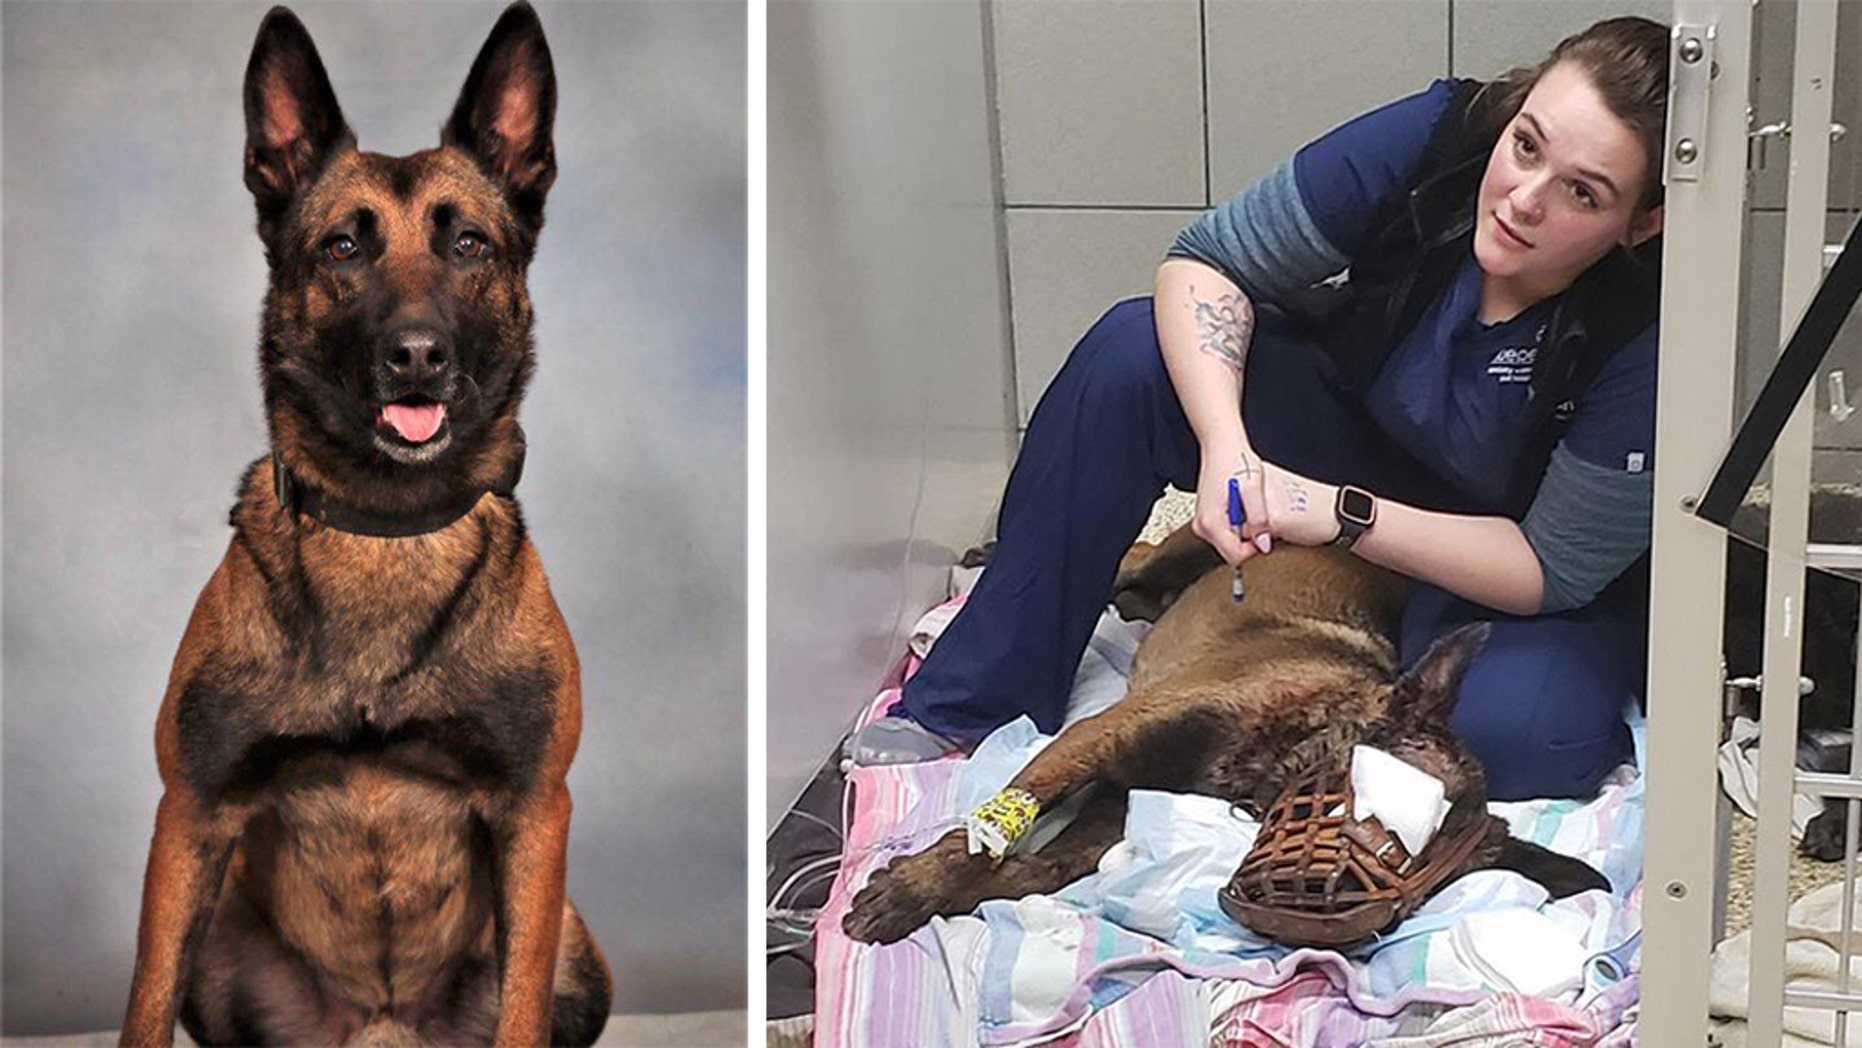 K-9 Indi, an officer with the DeKalb County Police Department in Georgia, lost an eye after a gunman opened fire following a traffic stop Thursday.